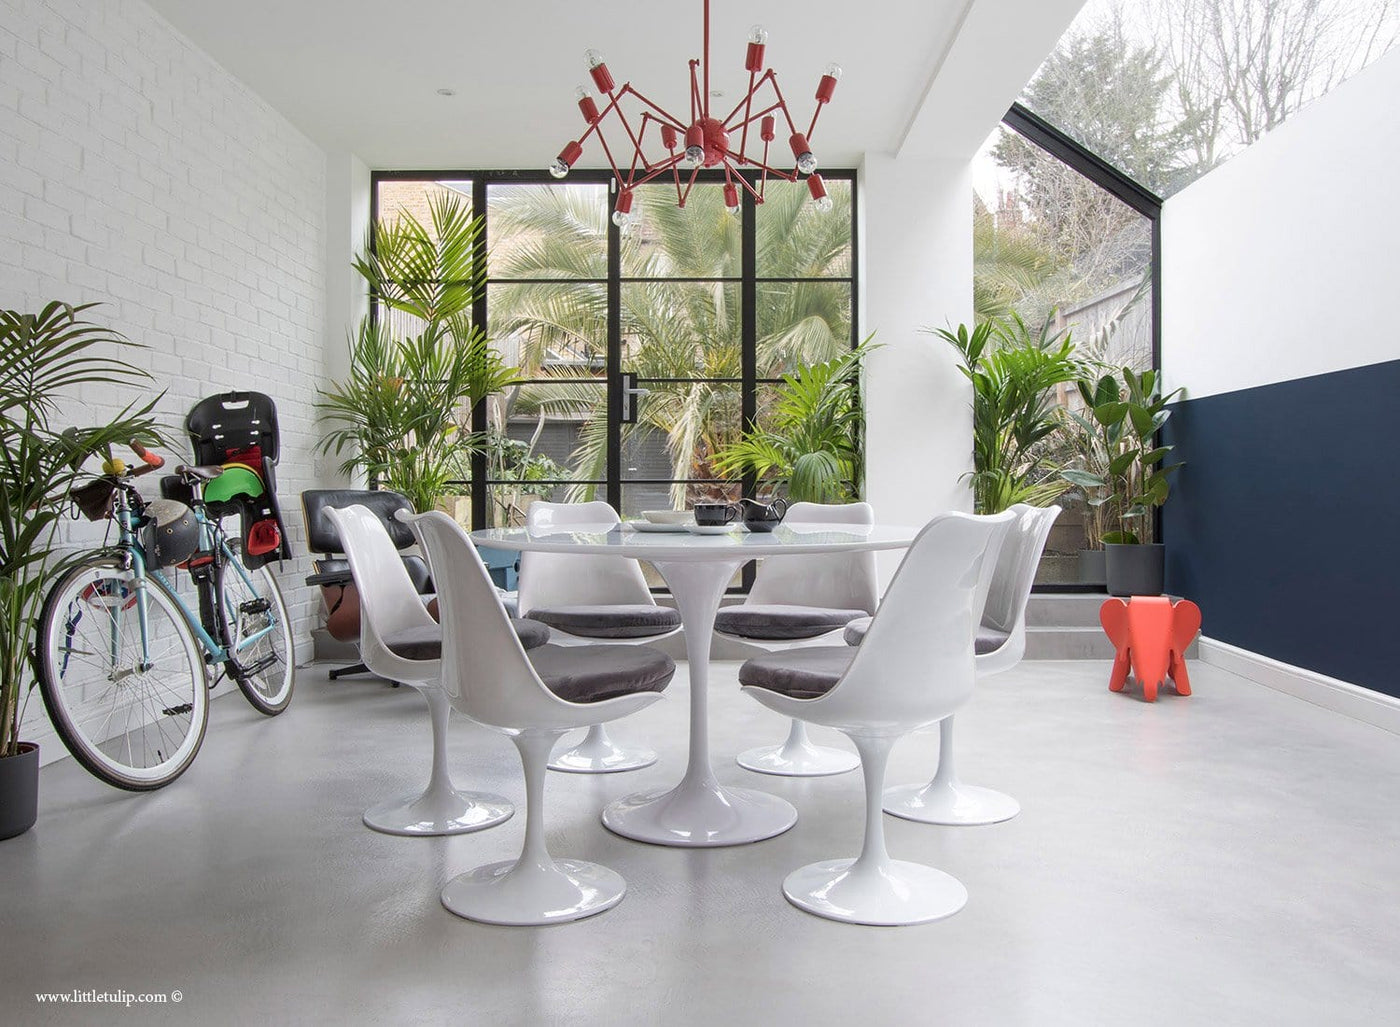 120cm White Laminate Circular Tulip Dining Table /& 6 Tulip Dining Side Chairs